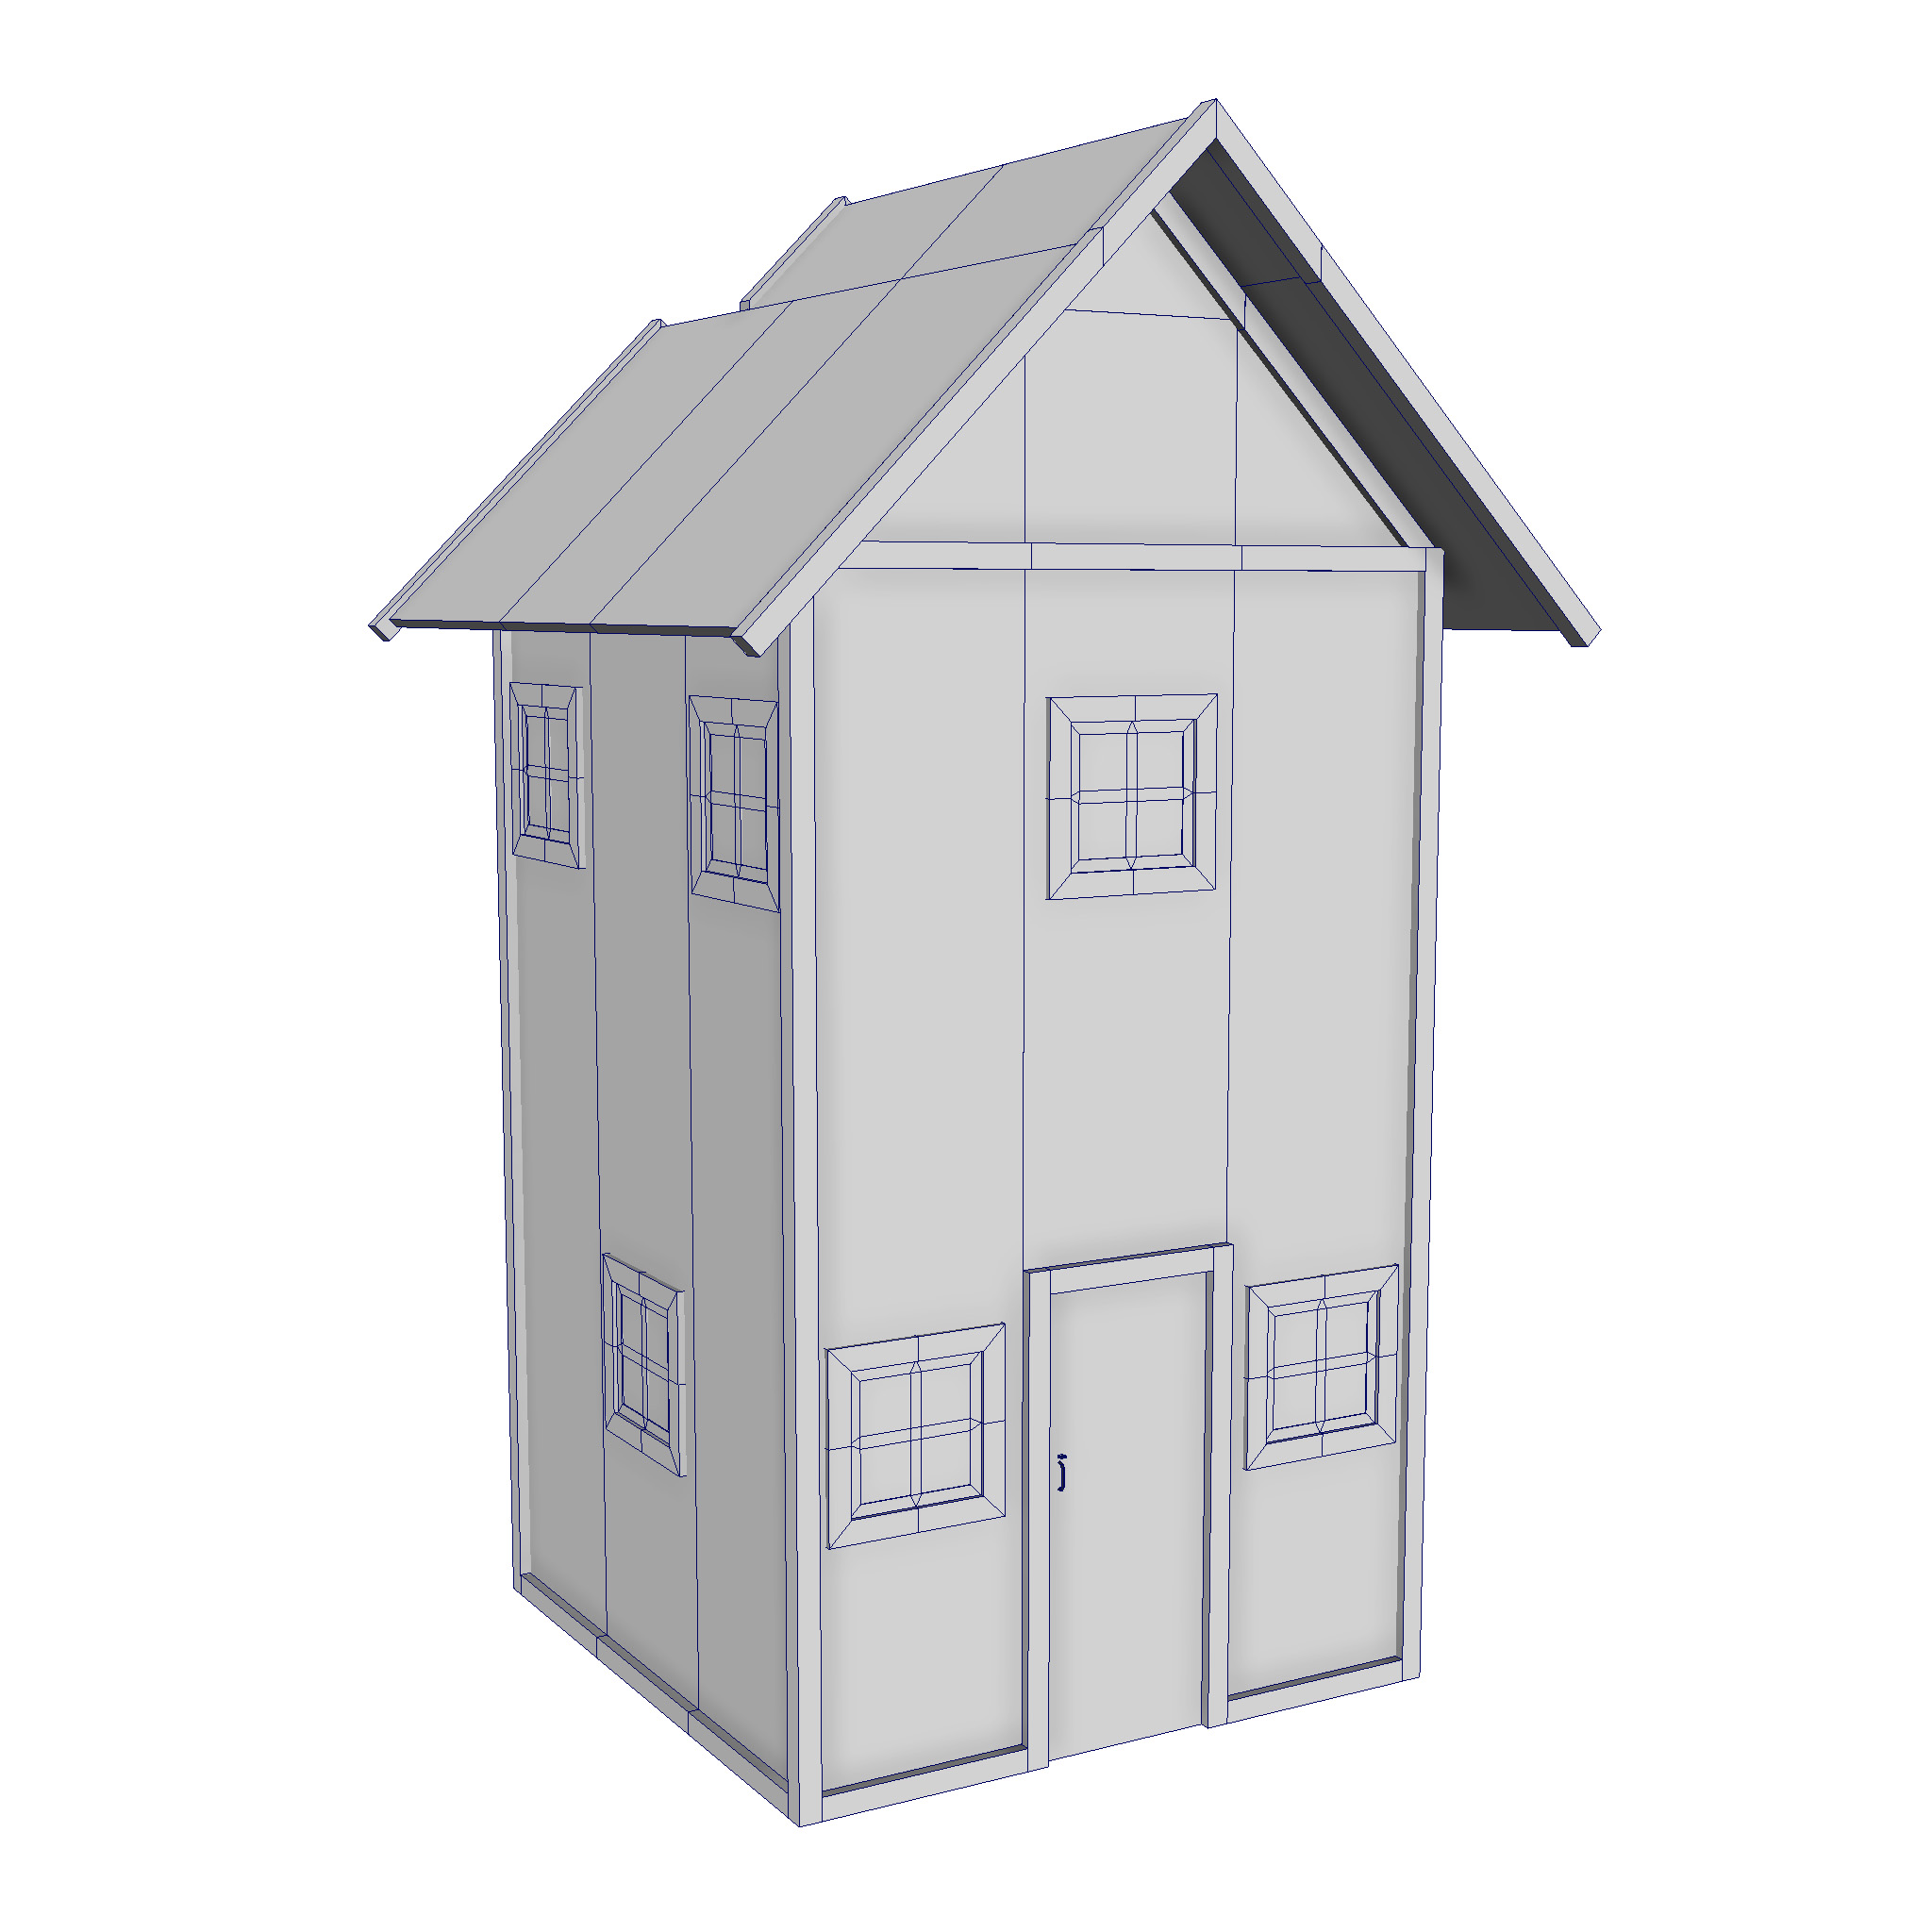 modular wood house set 3d model fbx ma mb 271430